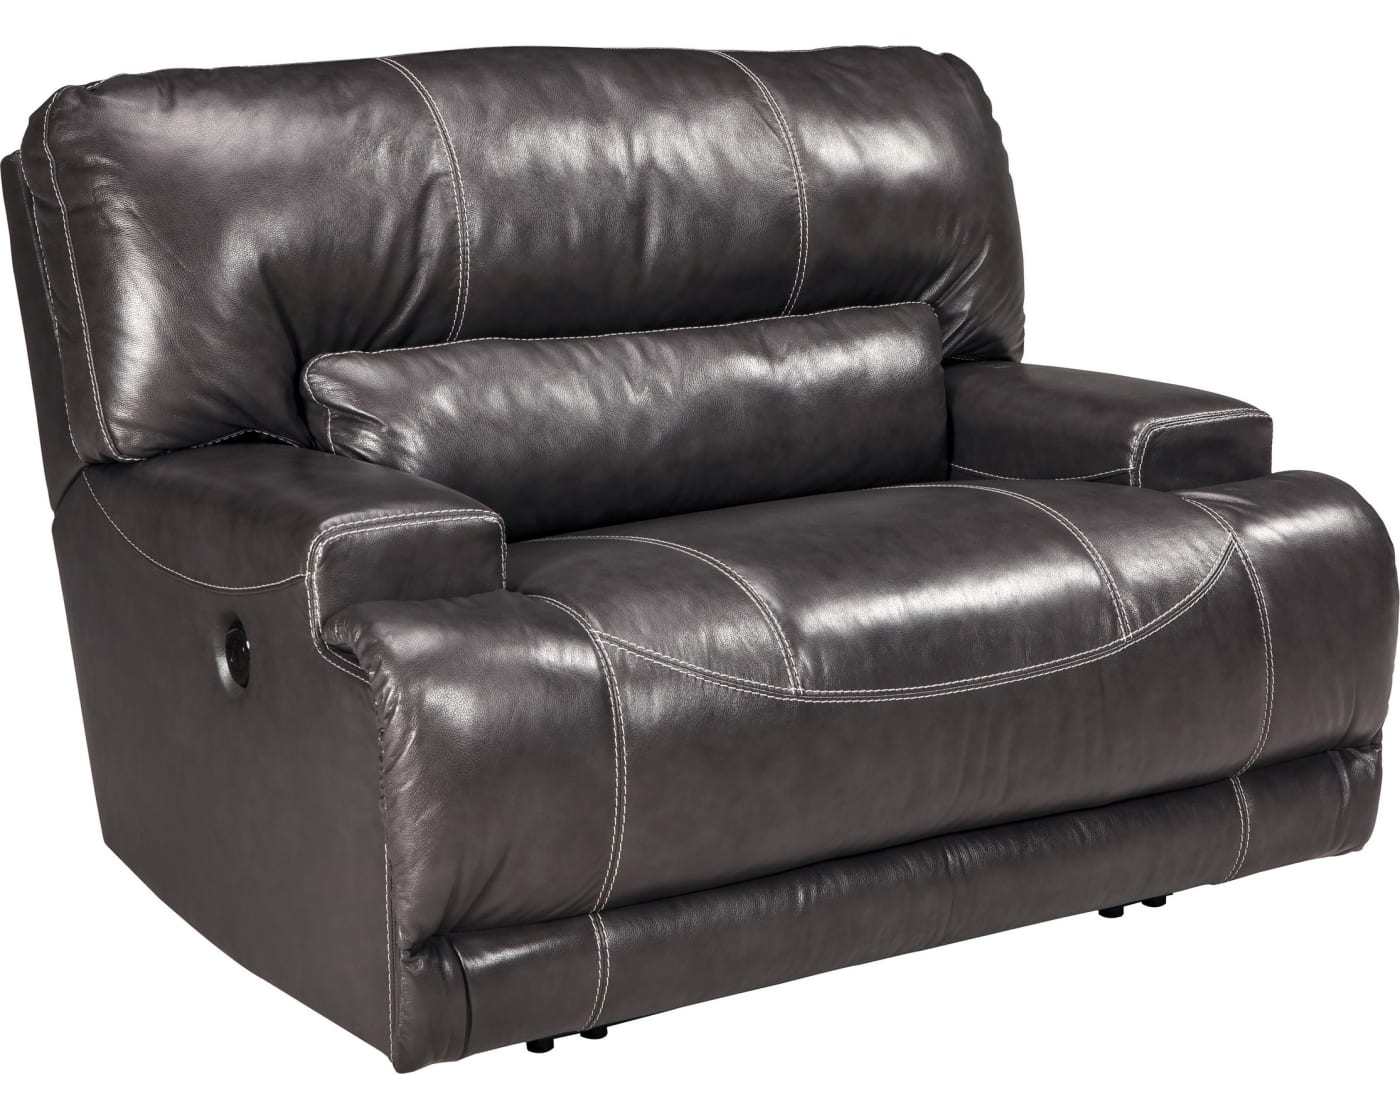 Signature Designashley Mccaskill Gray Wide Seat Power In Walker Gray Power Reclining Sofas (View 2 of 15)